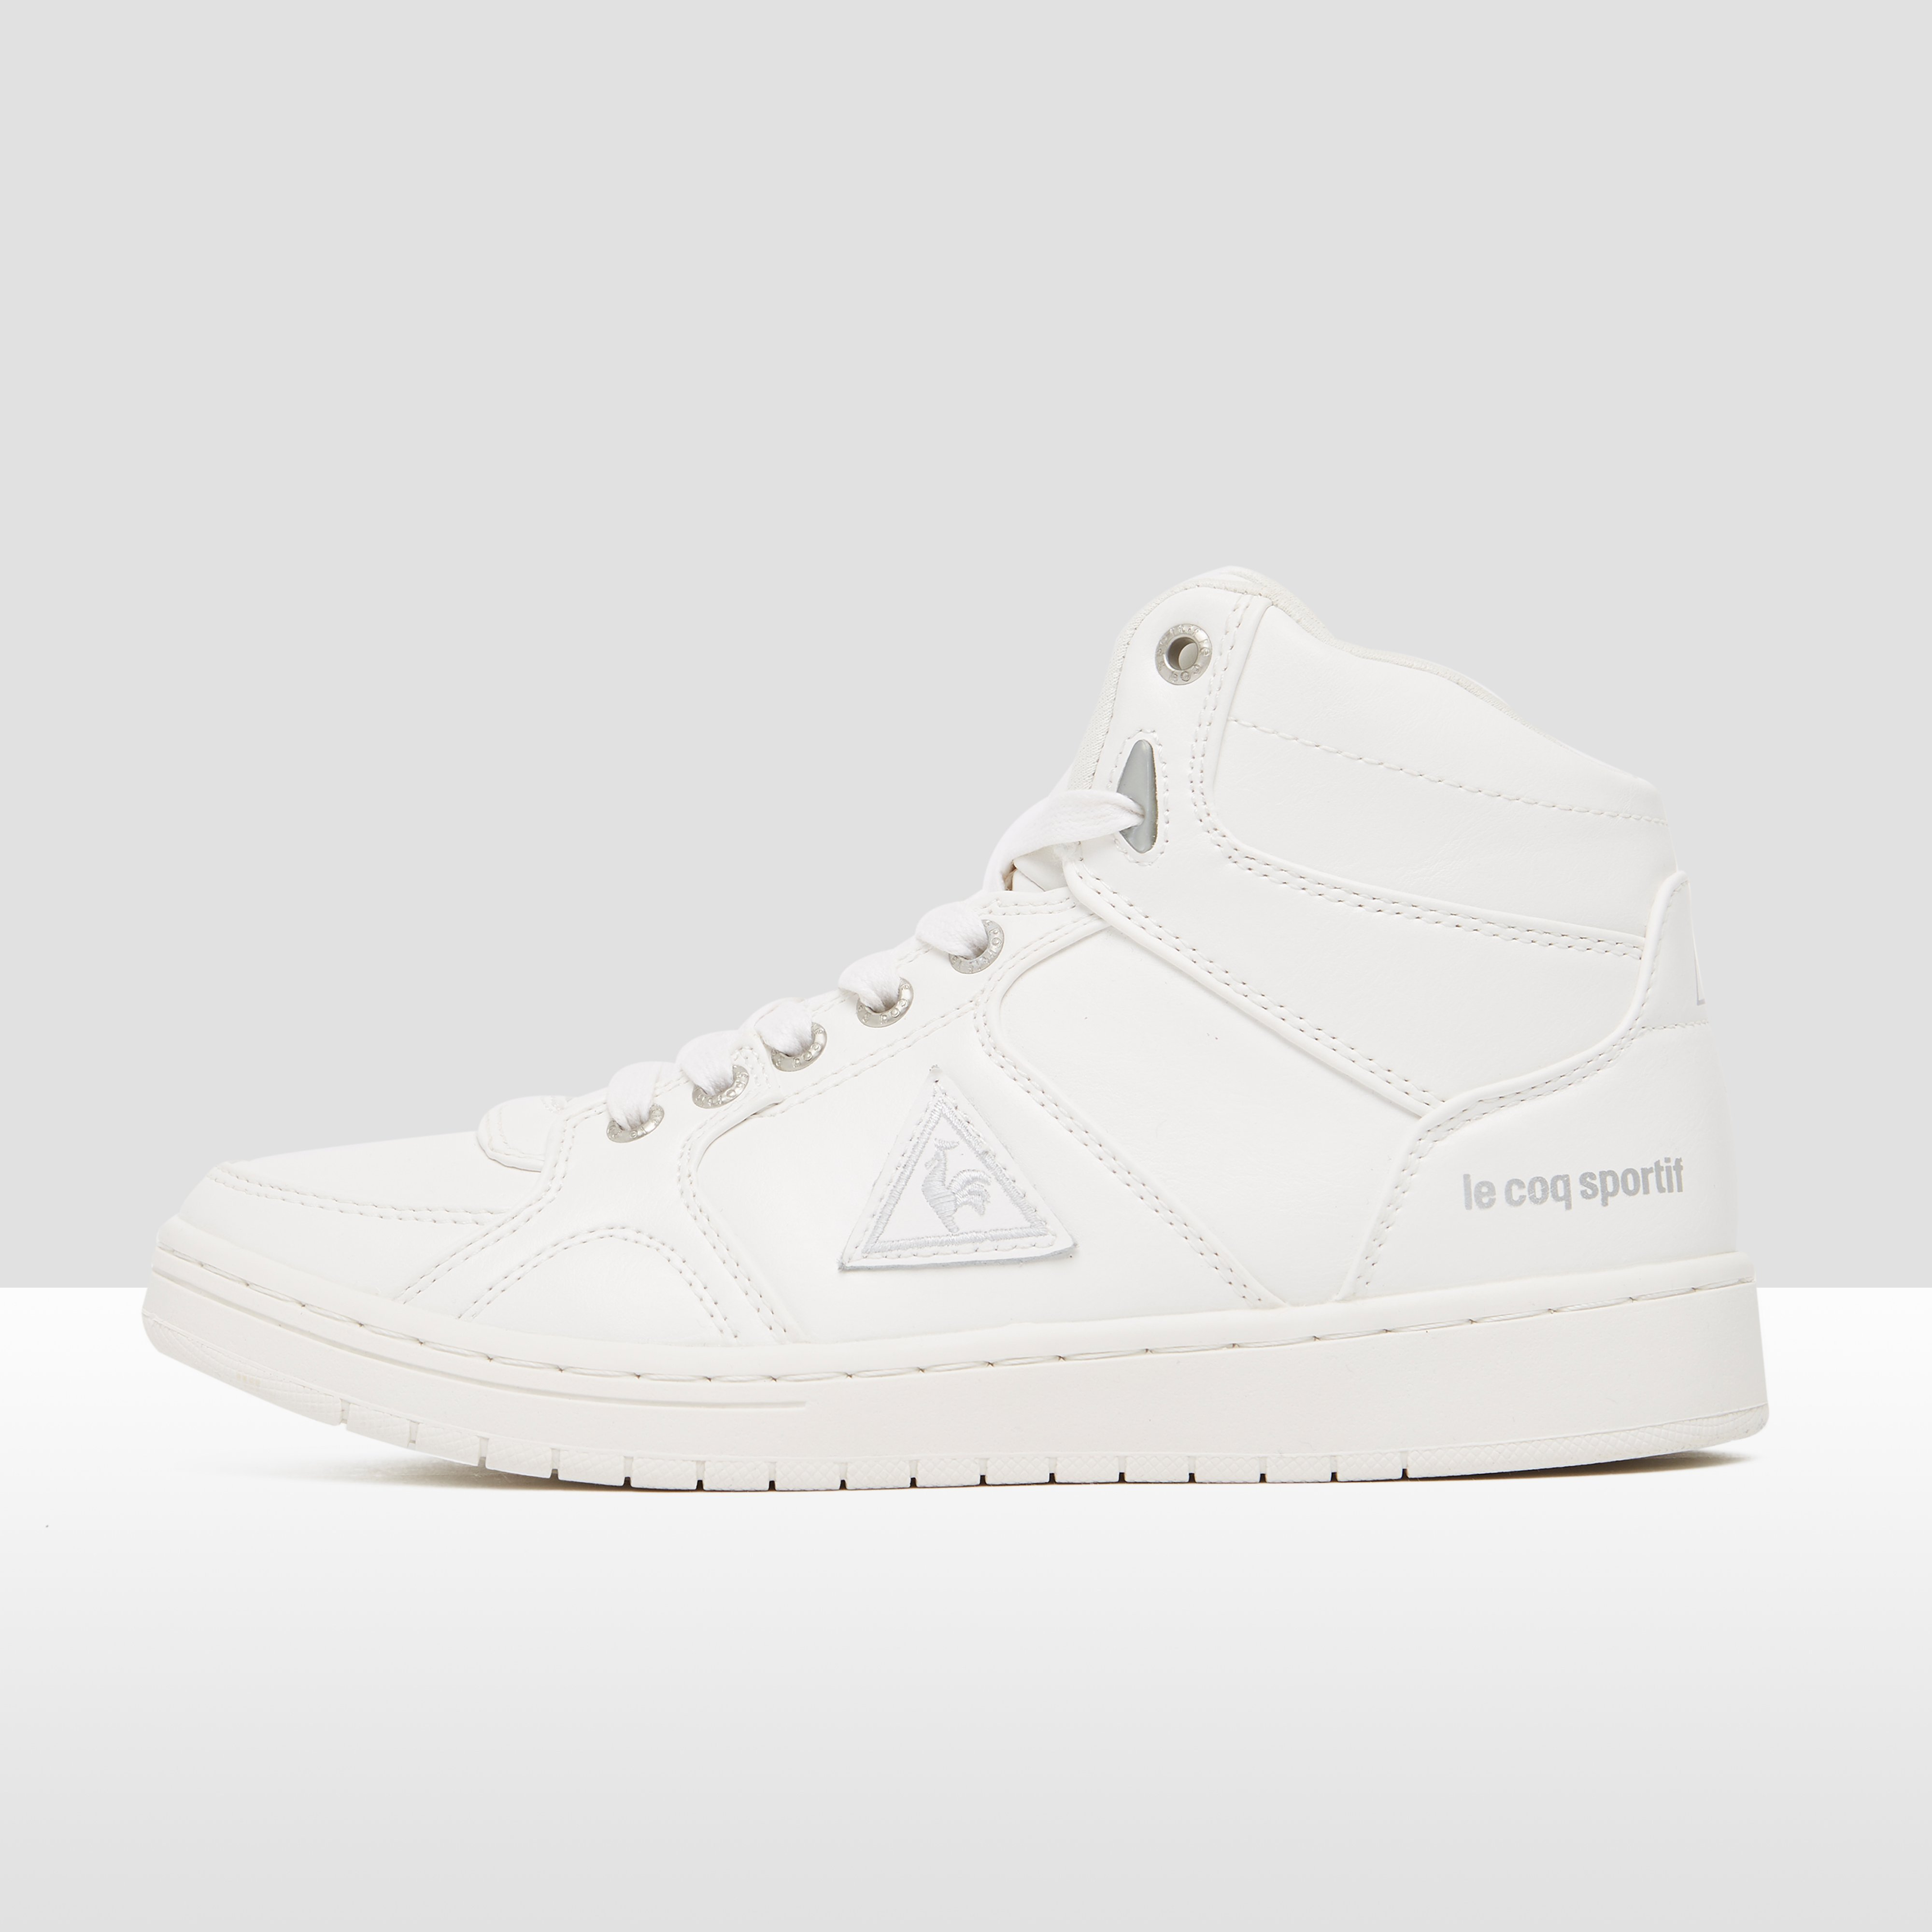 LE COQ SPORTIF CLEMENTINE MID SNEAKERS WIT DAMES